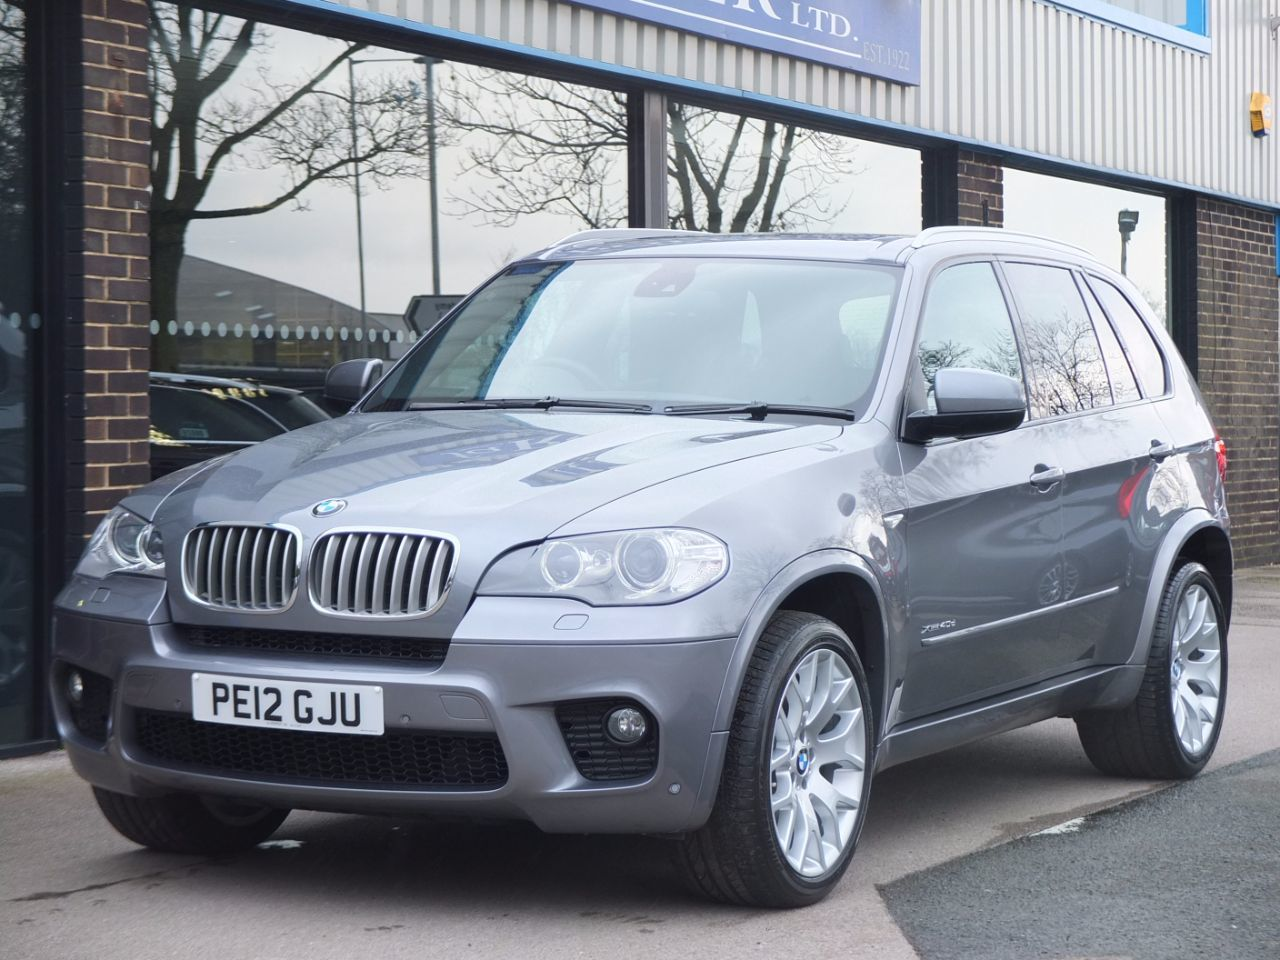 BMW X5 3.0 xDrive40d M-Sport Estate Diesel Space Grey MetallicBMW X5 3.0 xDrive40d M-Sport Estate Diesel Space Grey Metallic at fa Roper Ltd Bradford